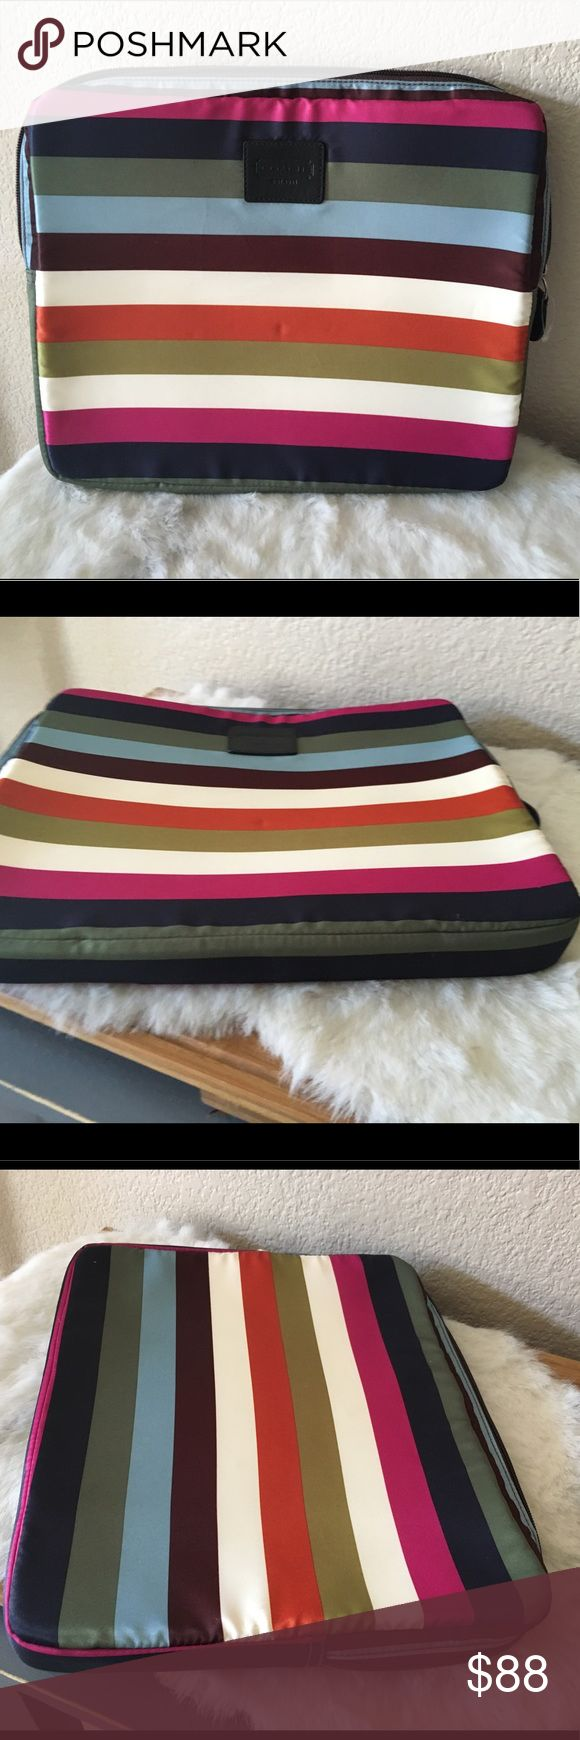 Coach Legacy Stripe Laptop Sleeve 15 inch dia Coach laptop sleeve in Legacy Stripe Satin. Pristine condition, without wear or staining. Dimensions 13 inch x 10 inch x 1.5 inch Coach Accessories Laptop Cases